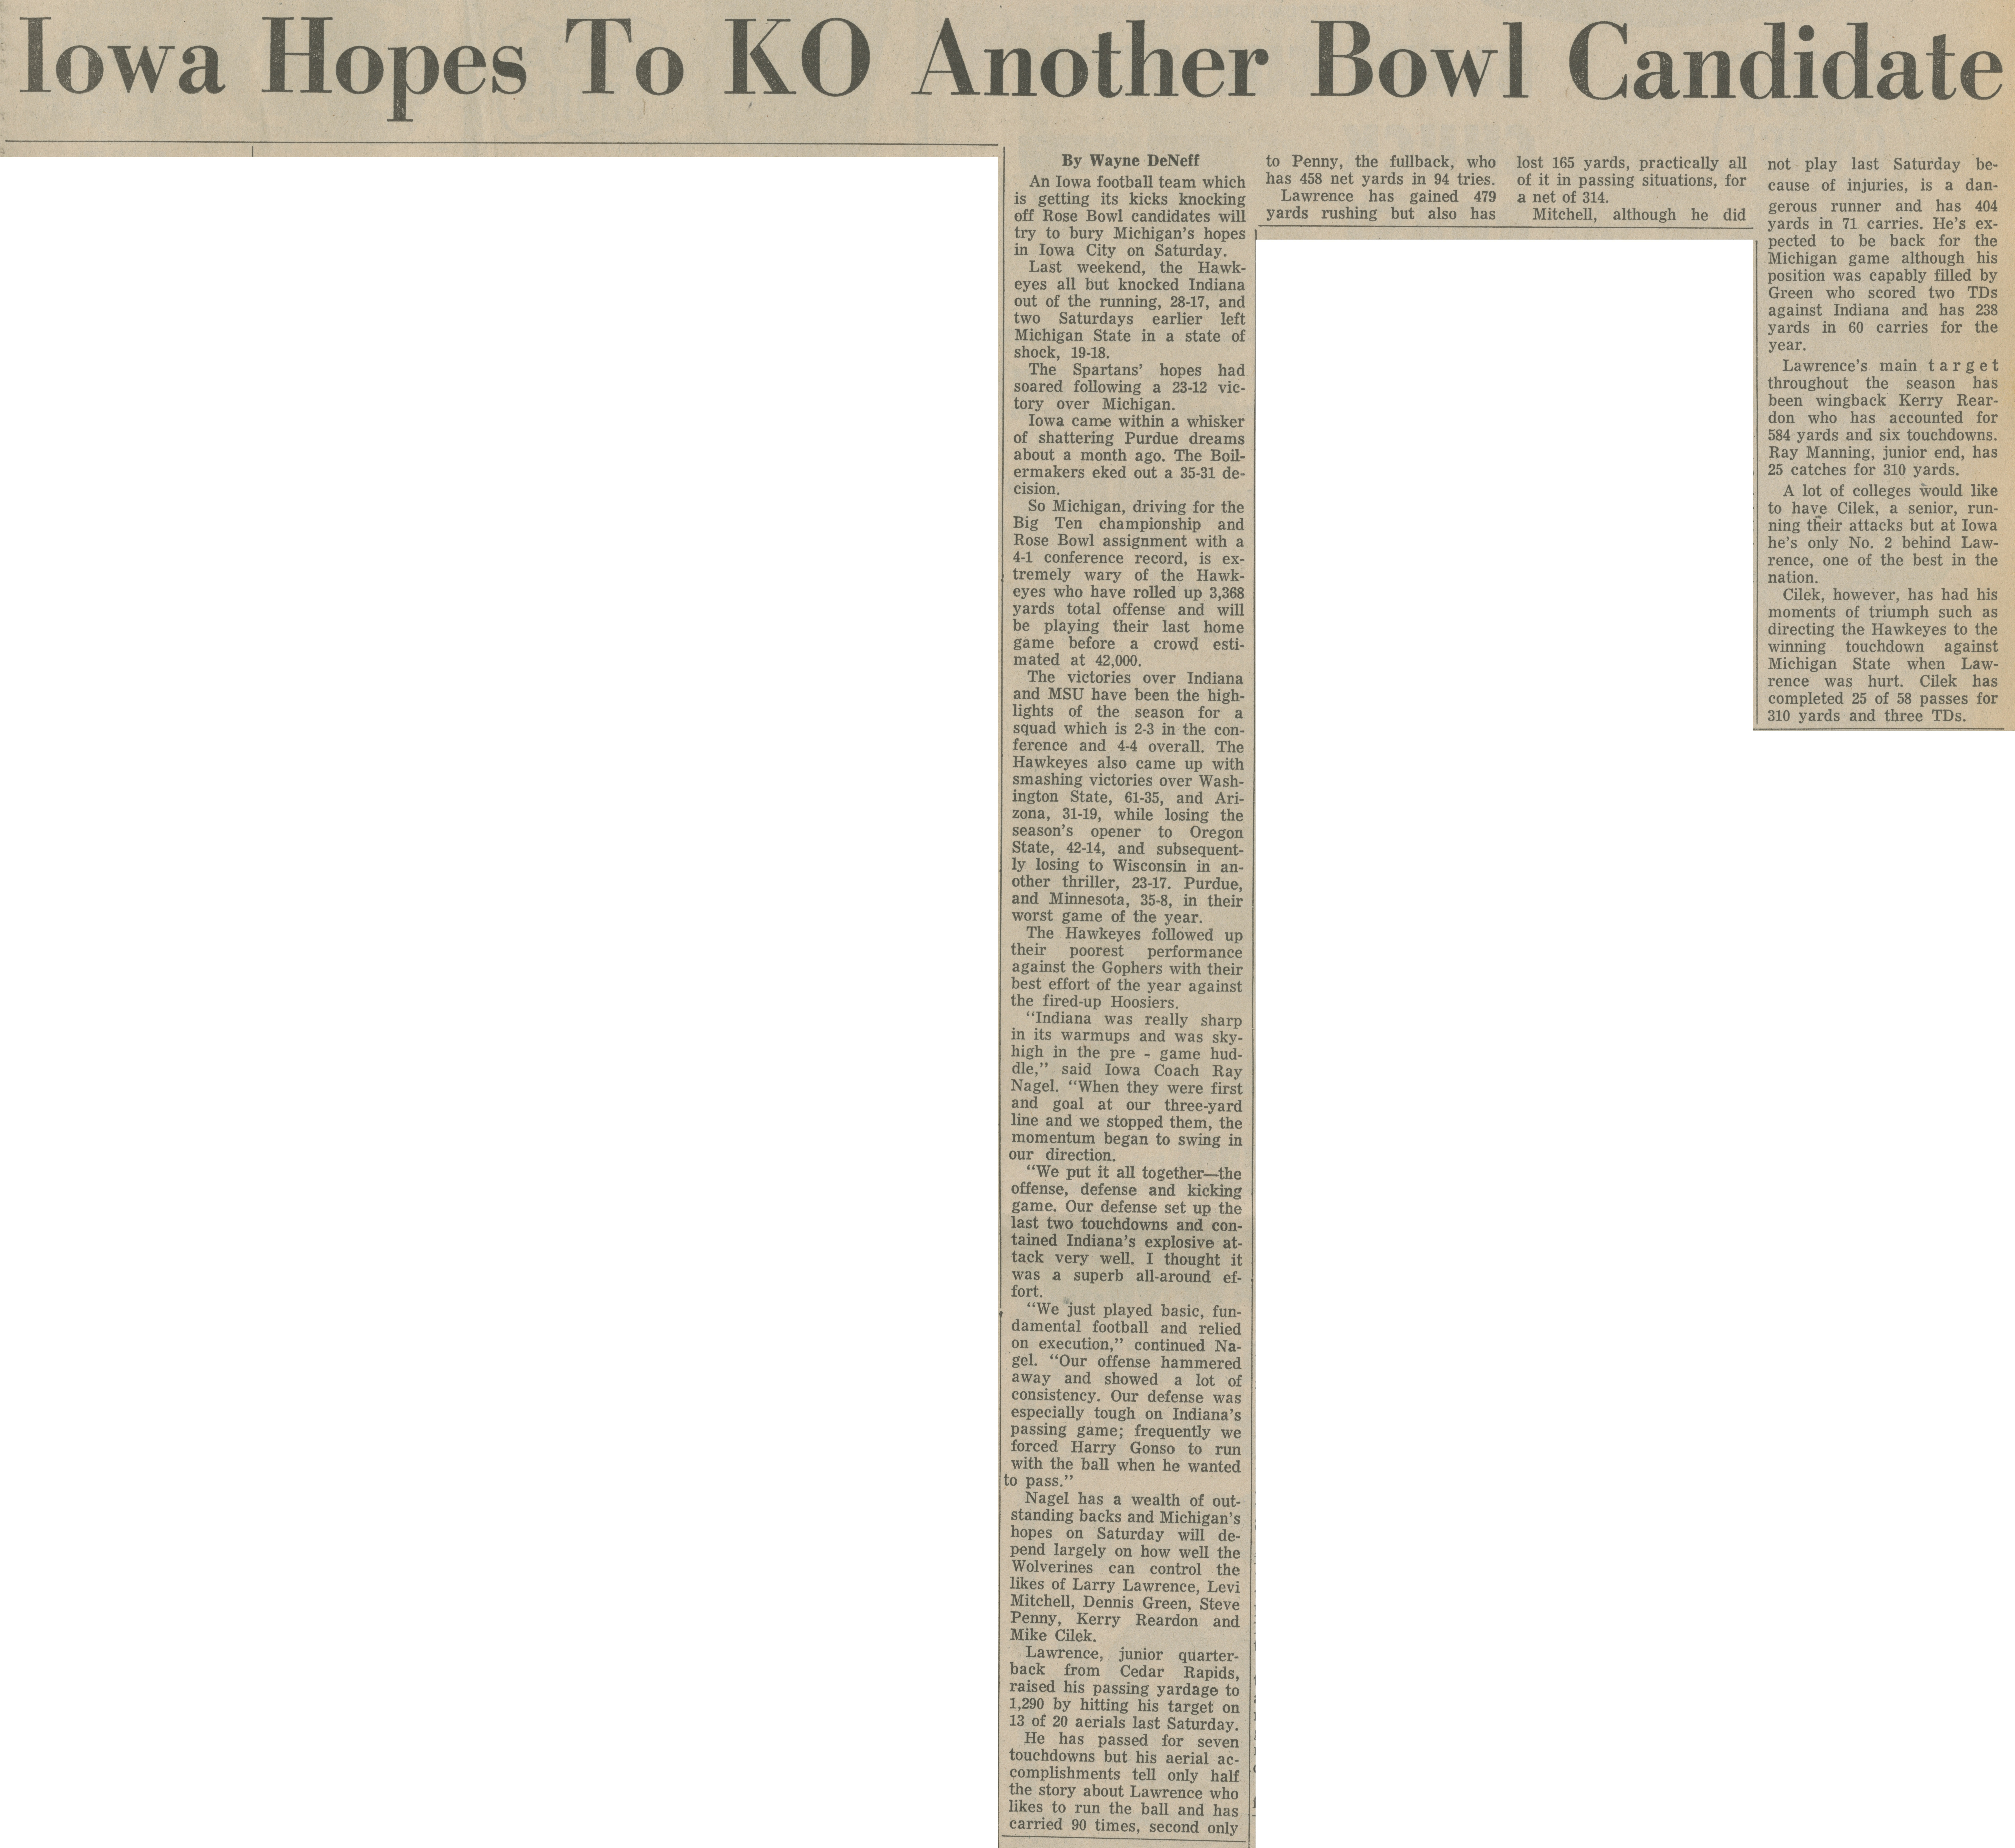 Iowa Hopes To KO Another Bowl Candidate image